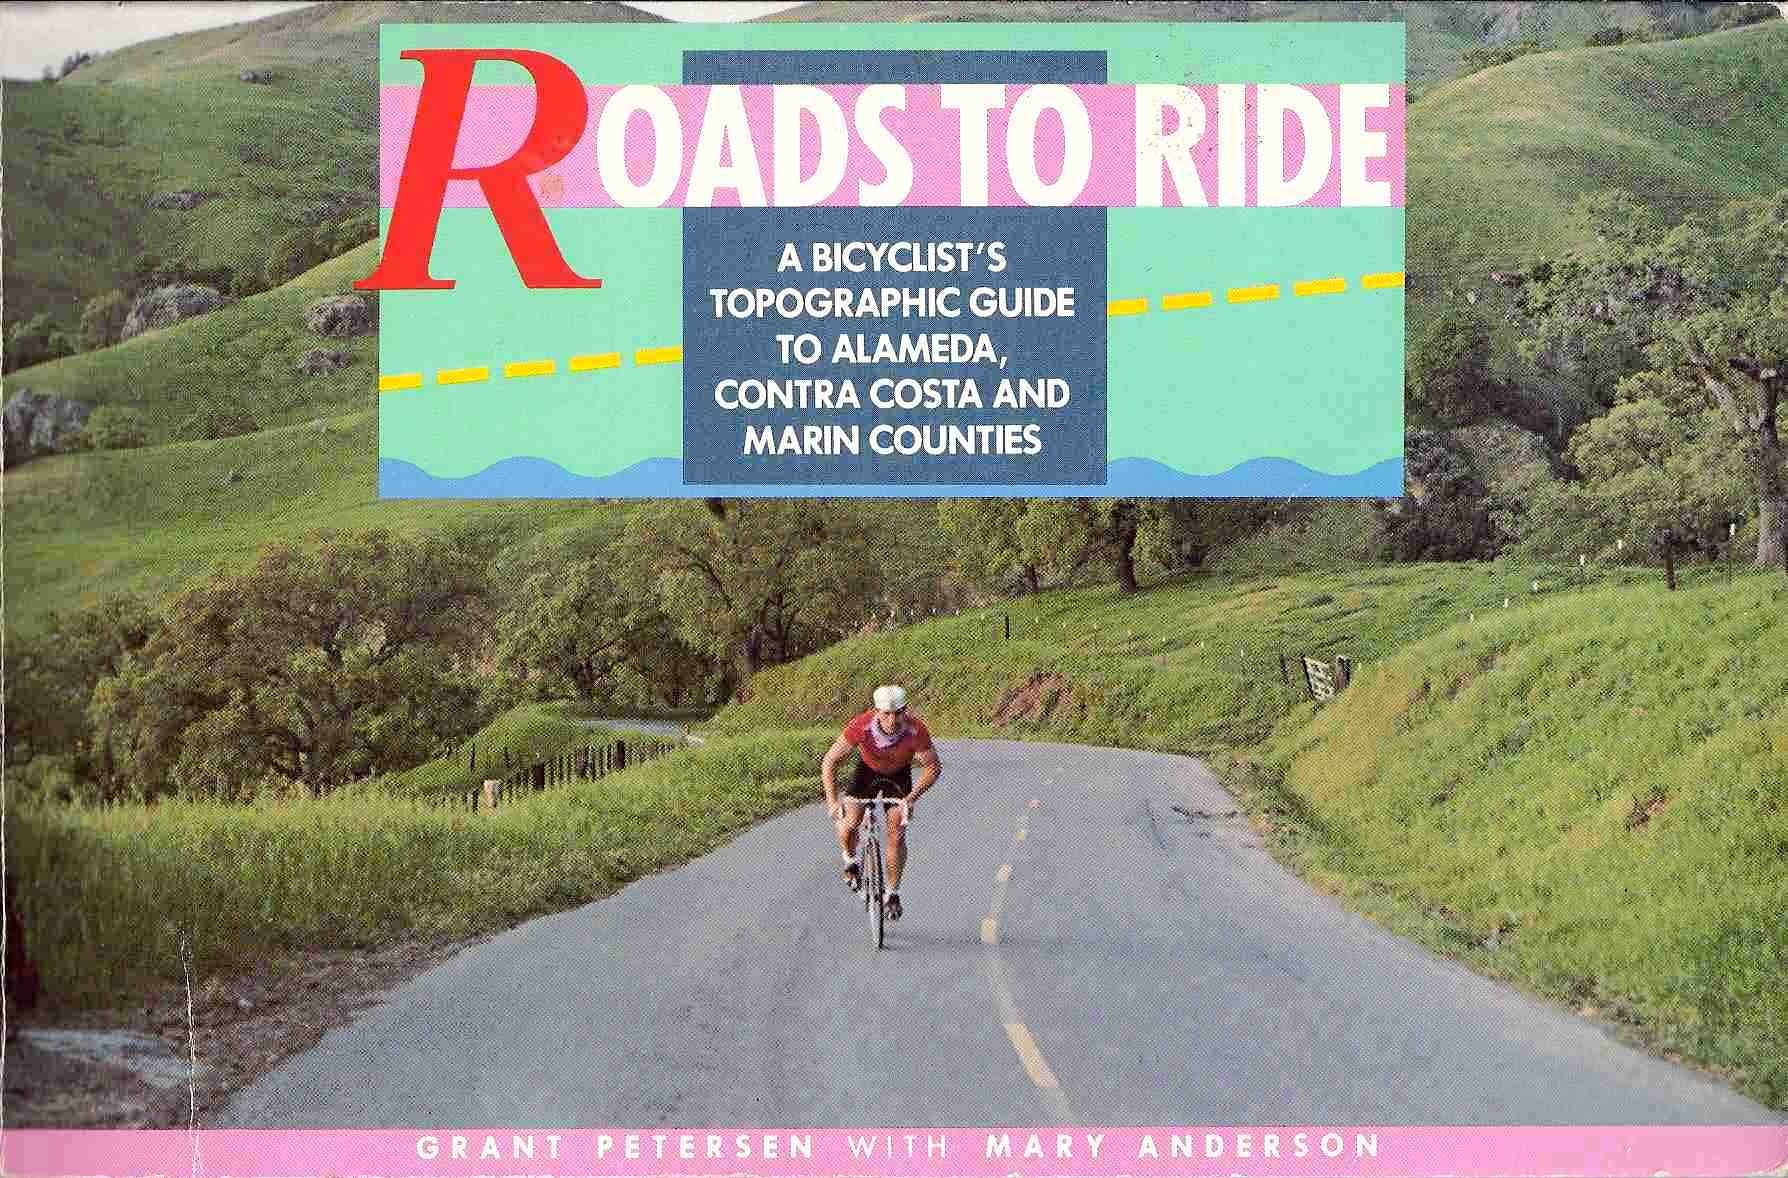 roads-to-ride-a-bicyclist-s-topographic-guide-to-alameda-contra-costa-and-marin-counties